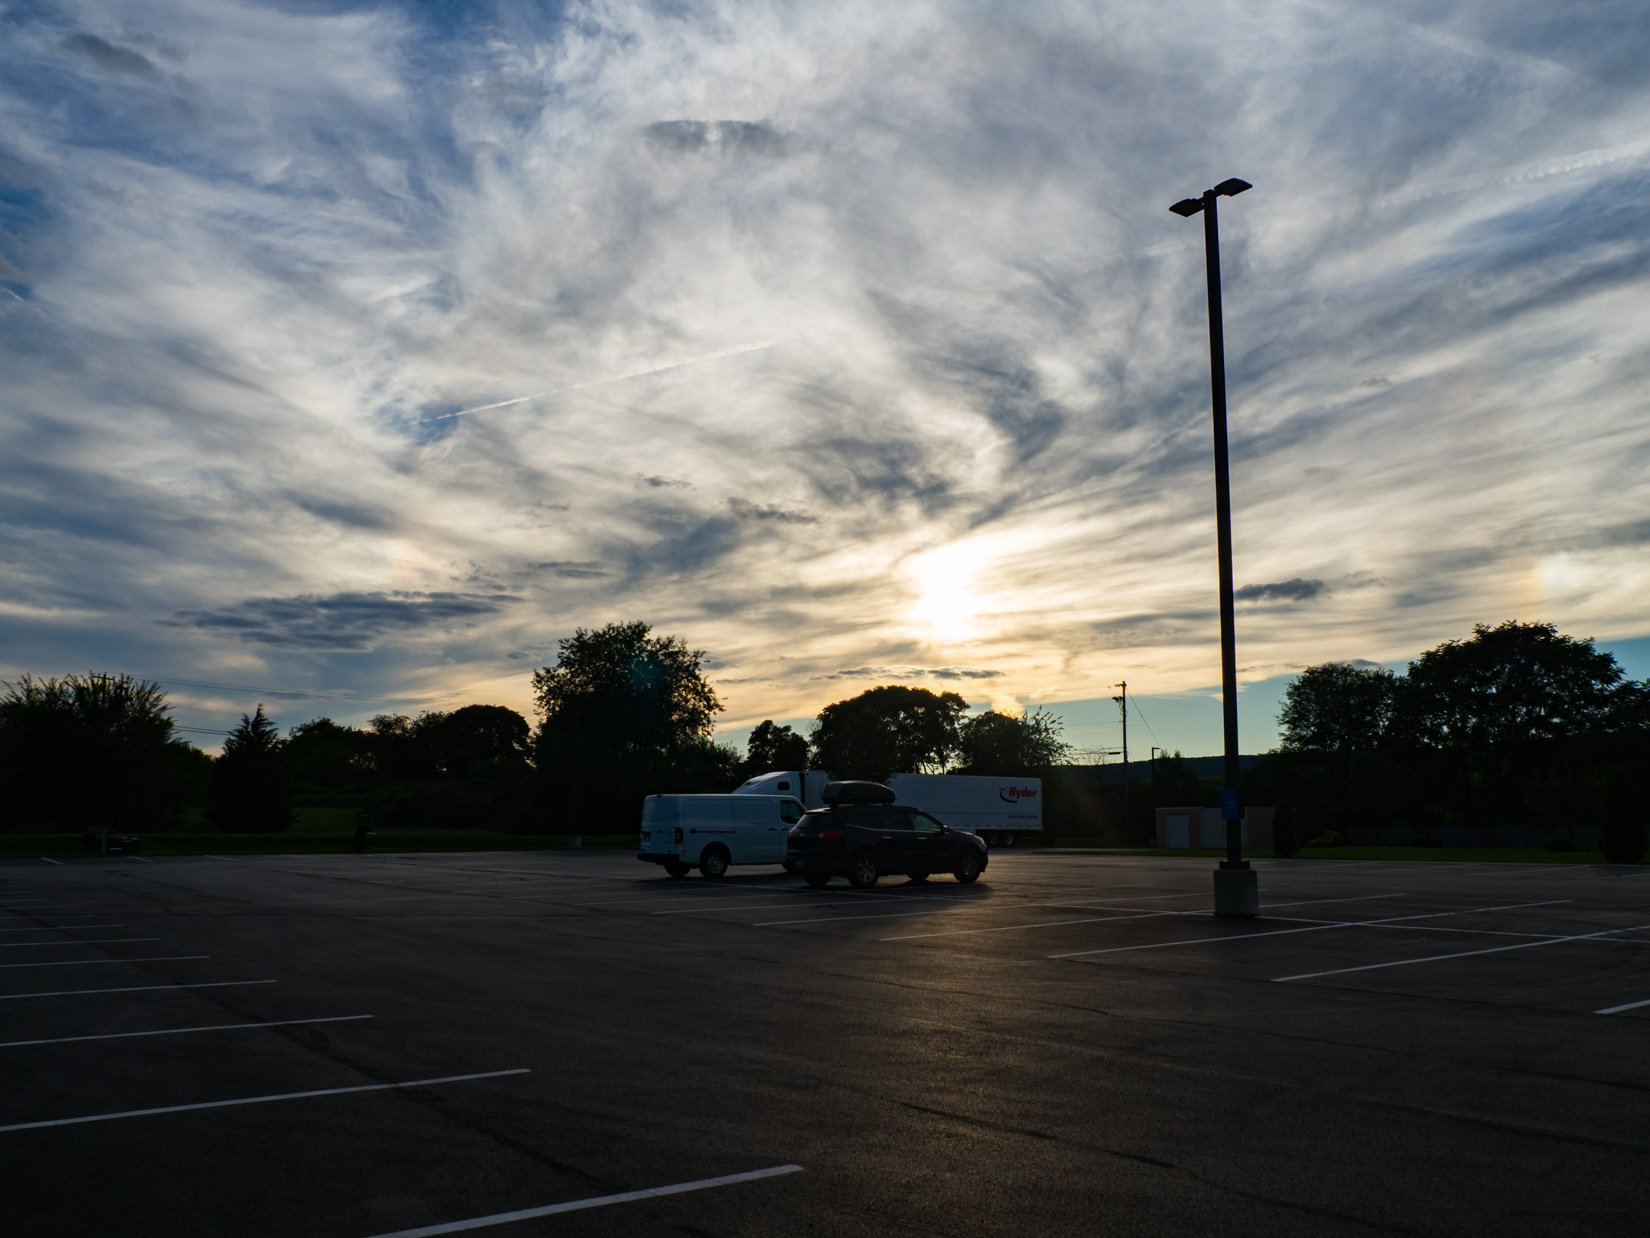 Sunset over Parking Lot